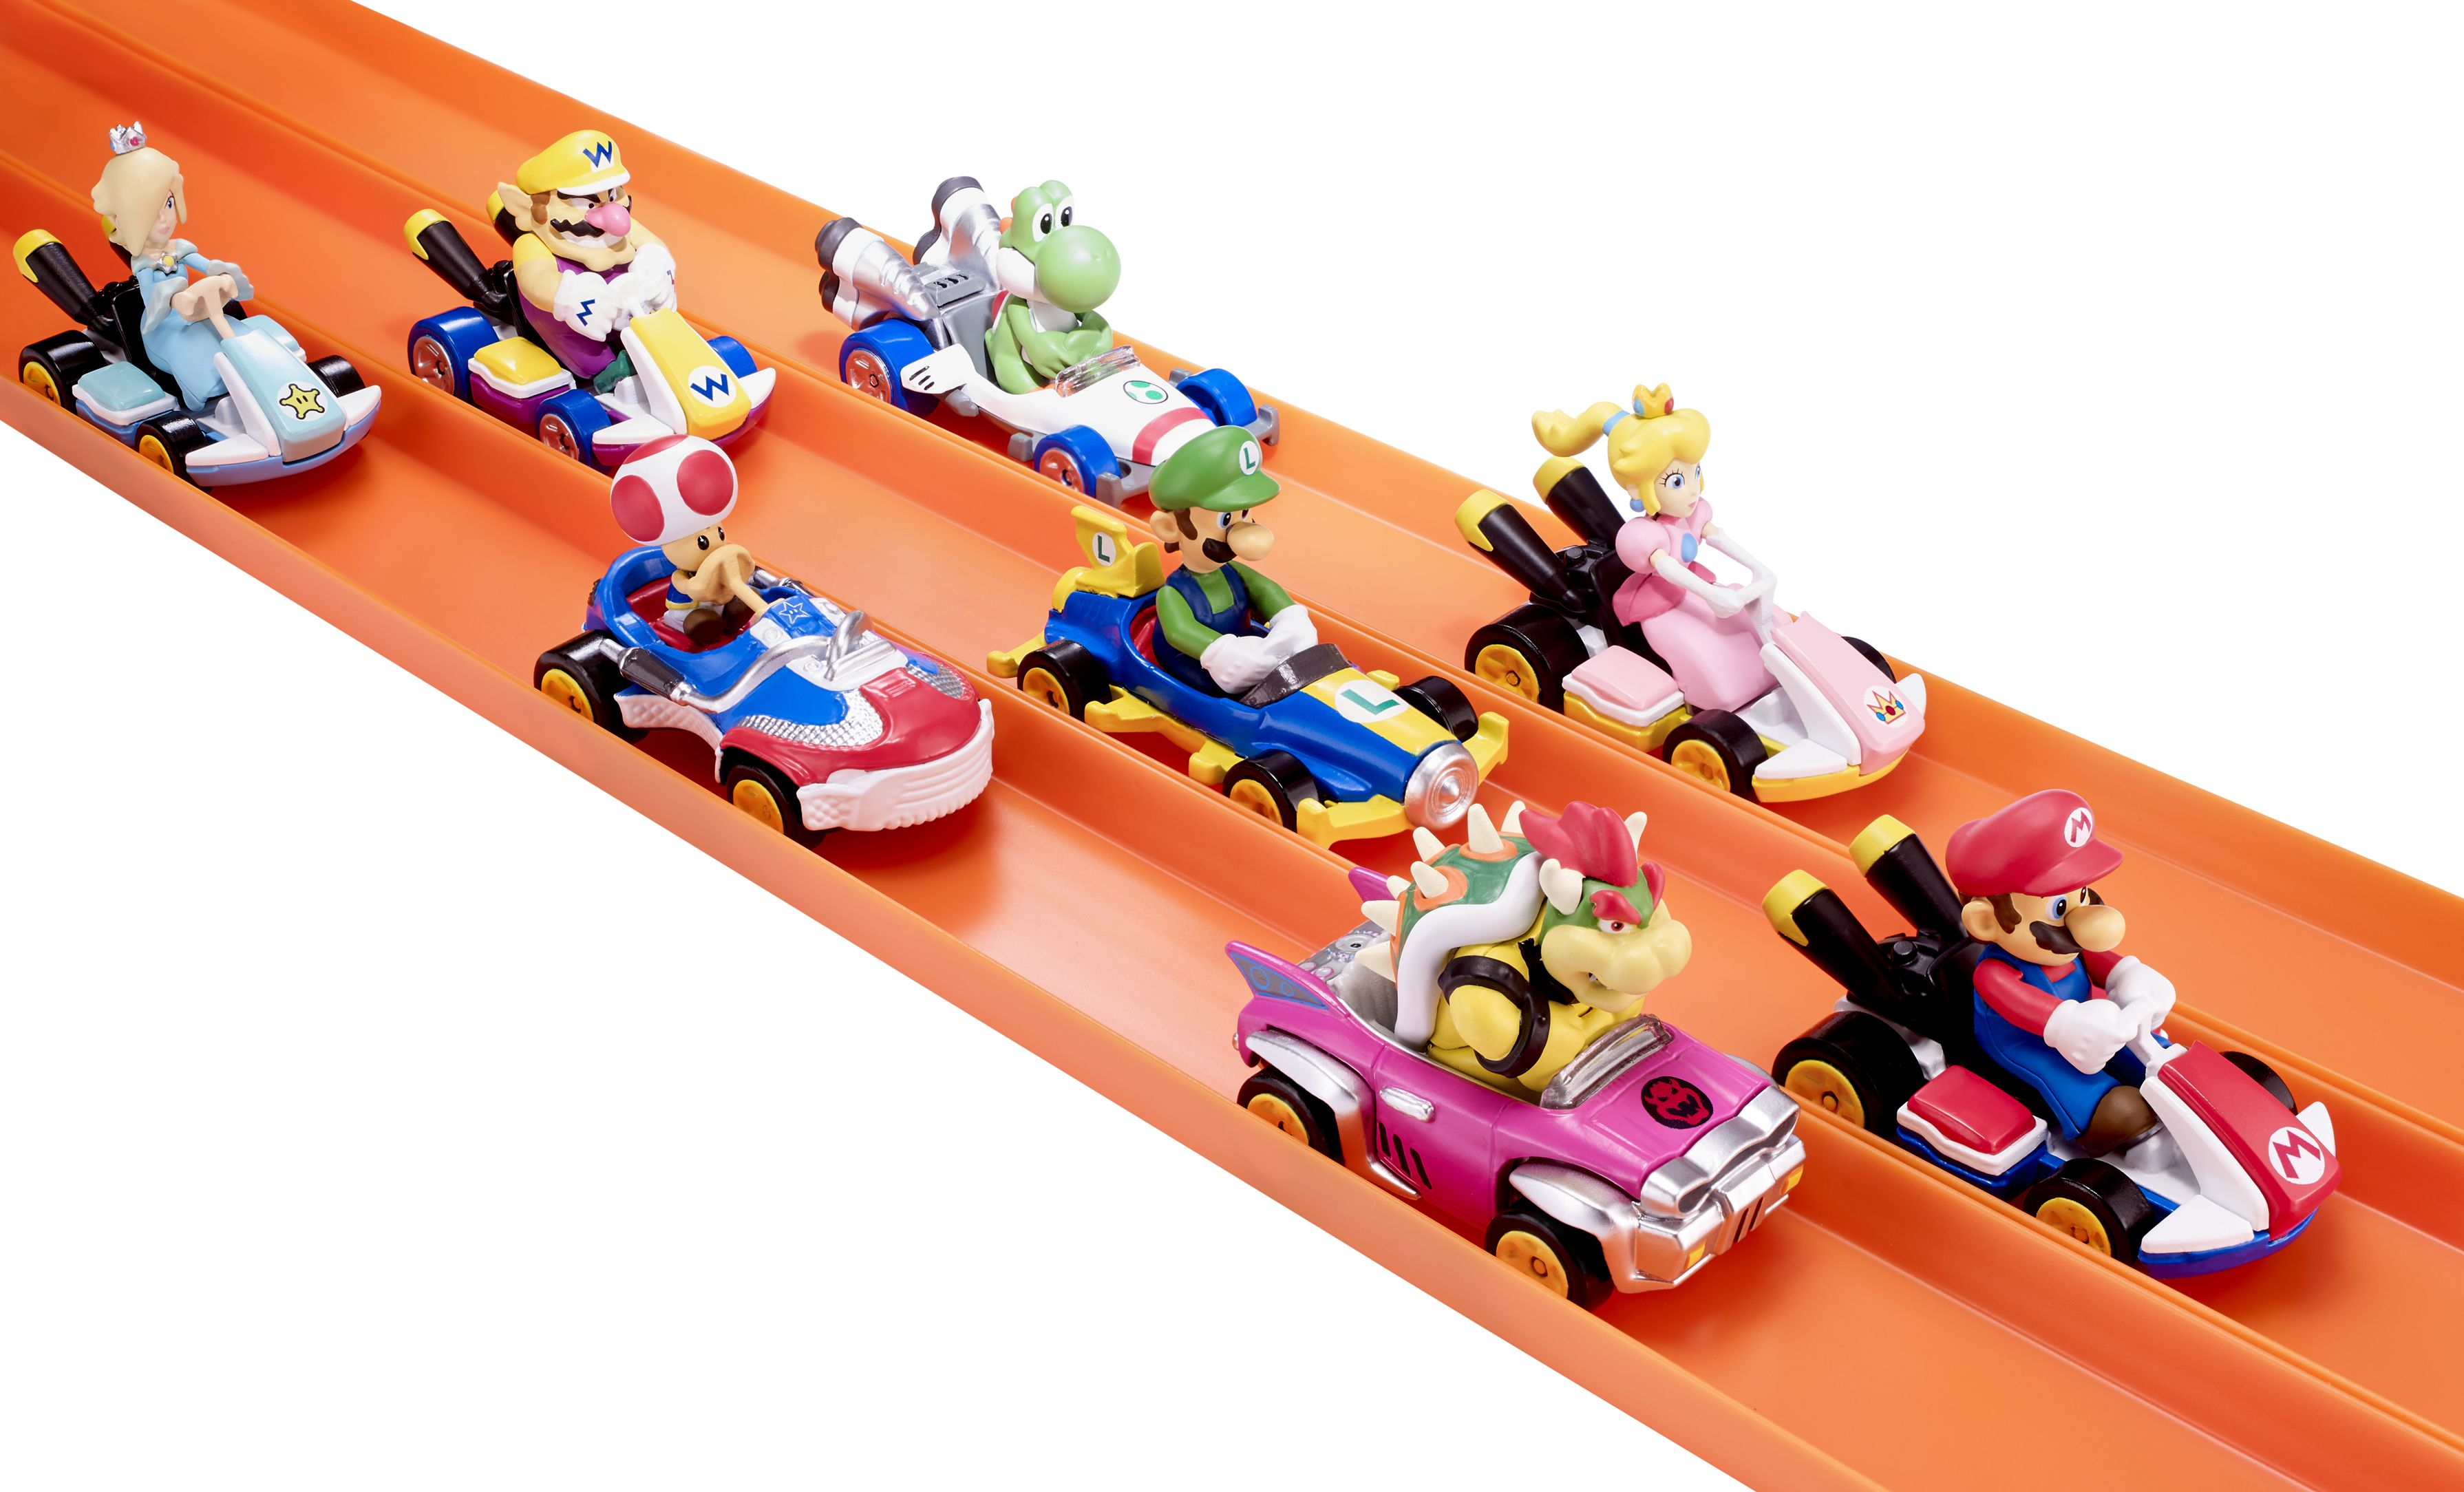 SDCC 2018: 'Mario Kart' Hot Wheels Are Now a Thing